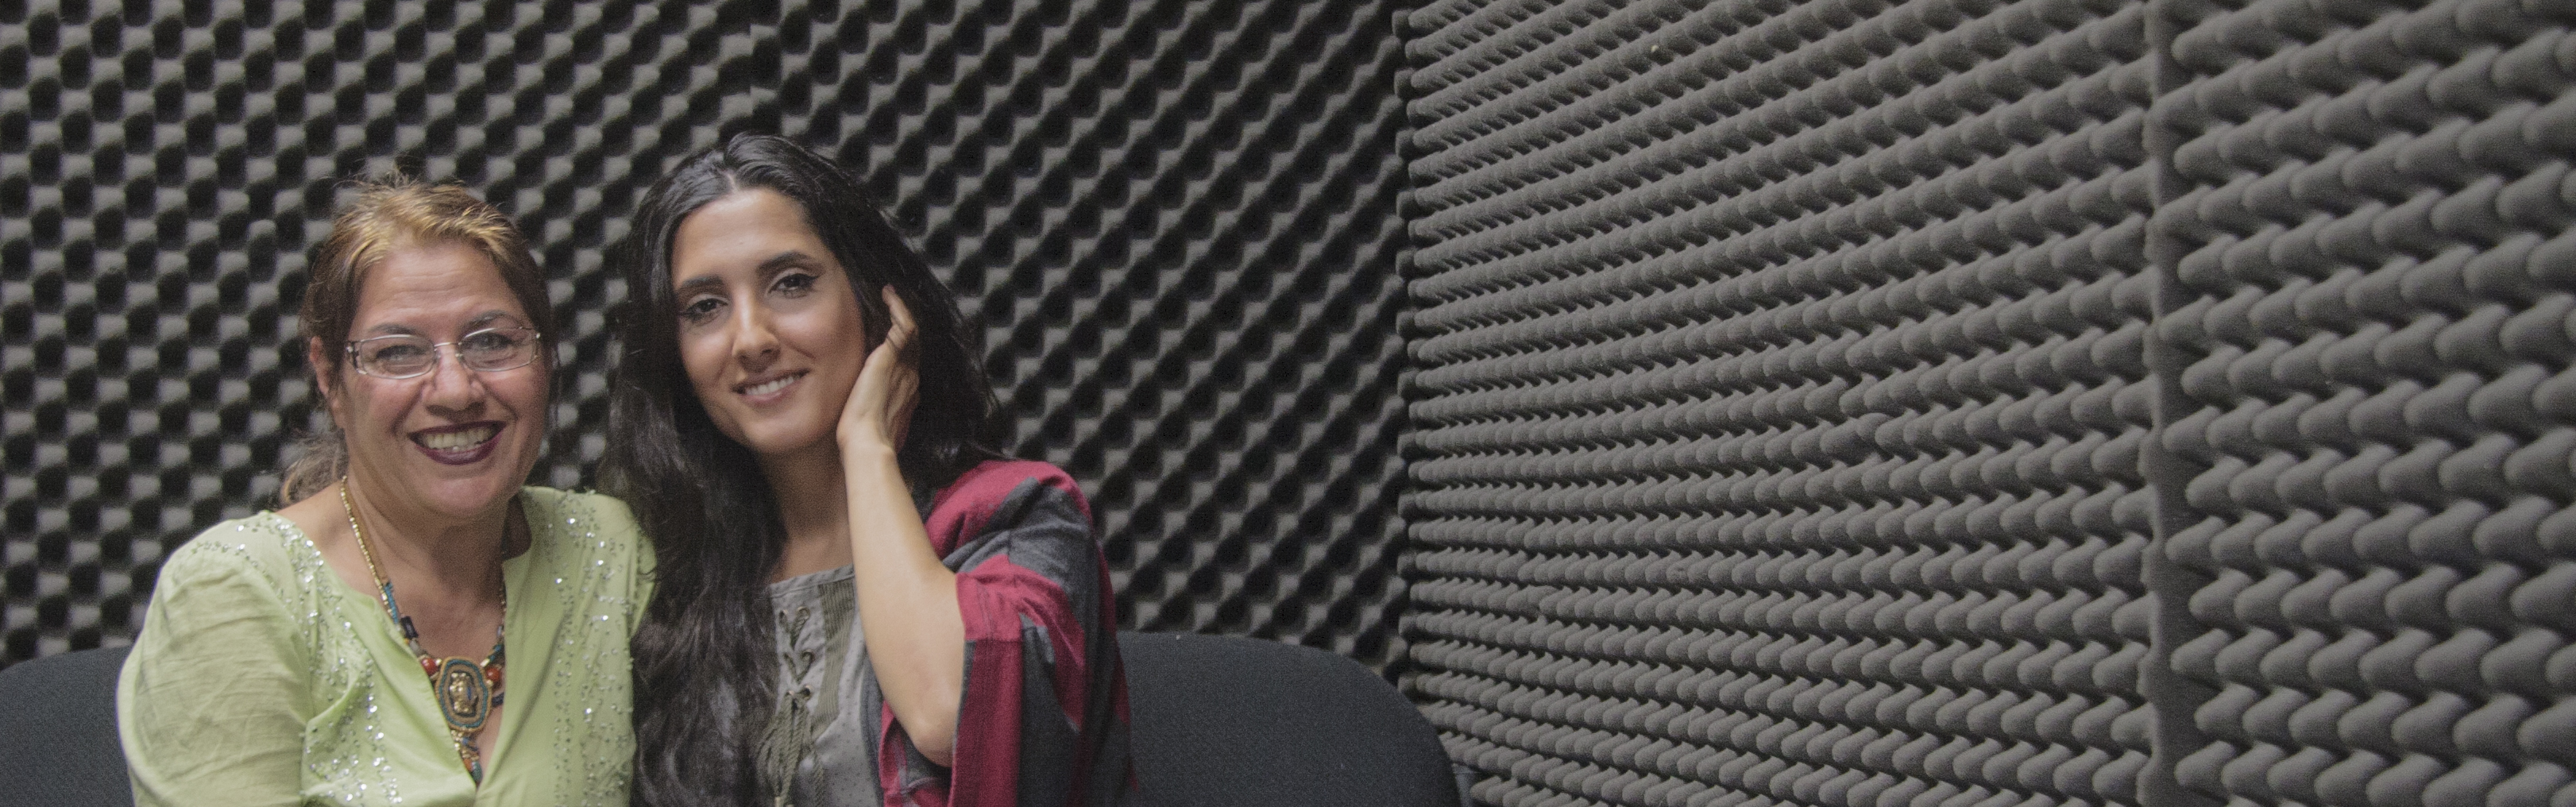 Farsi Show – 06.03.15 – Singing with Shadi Amini